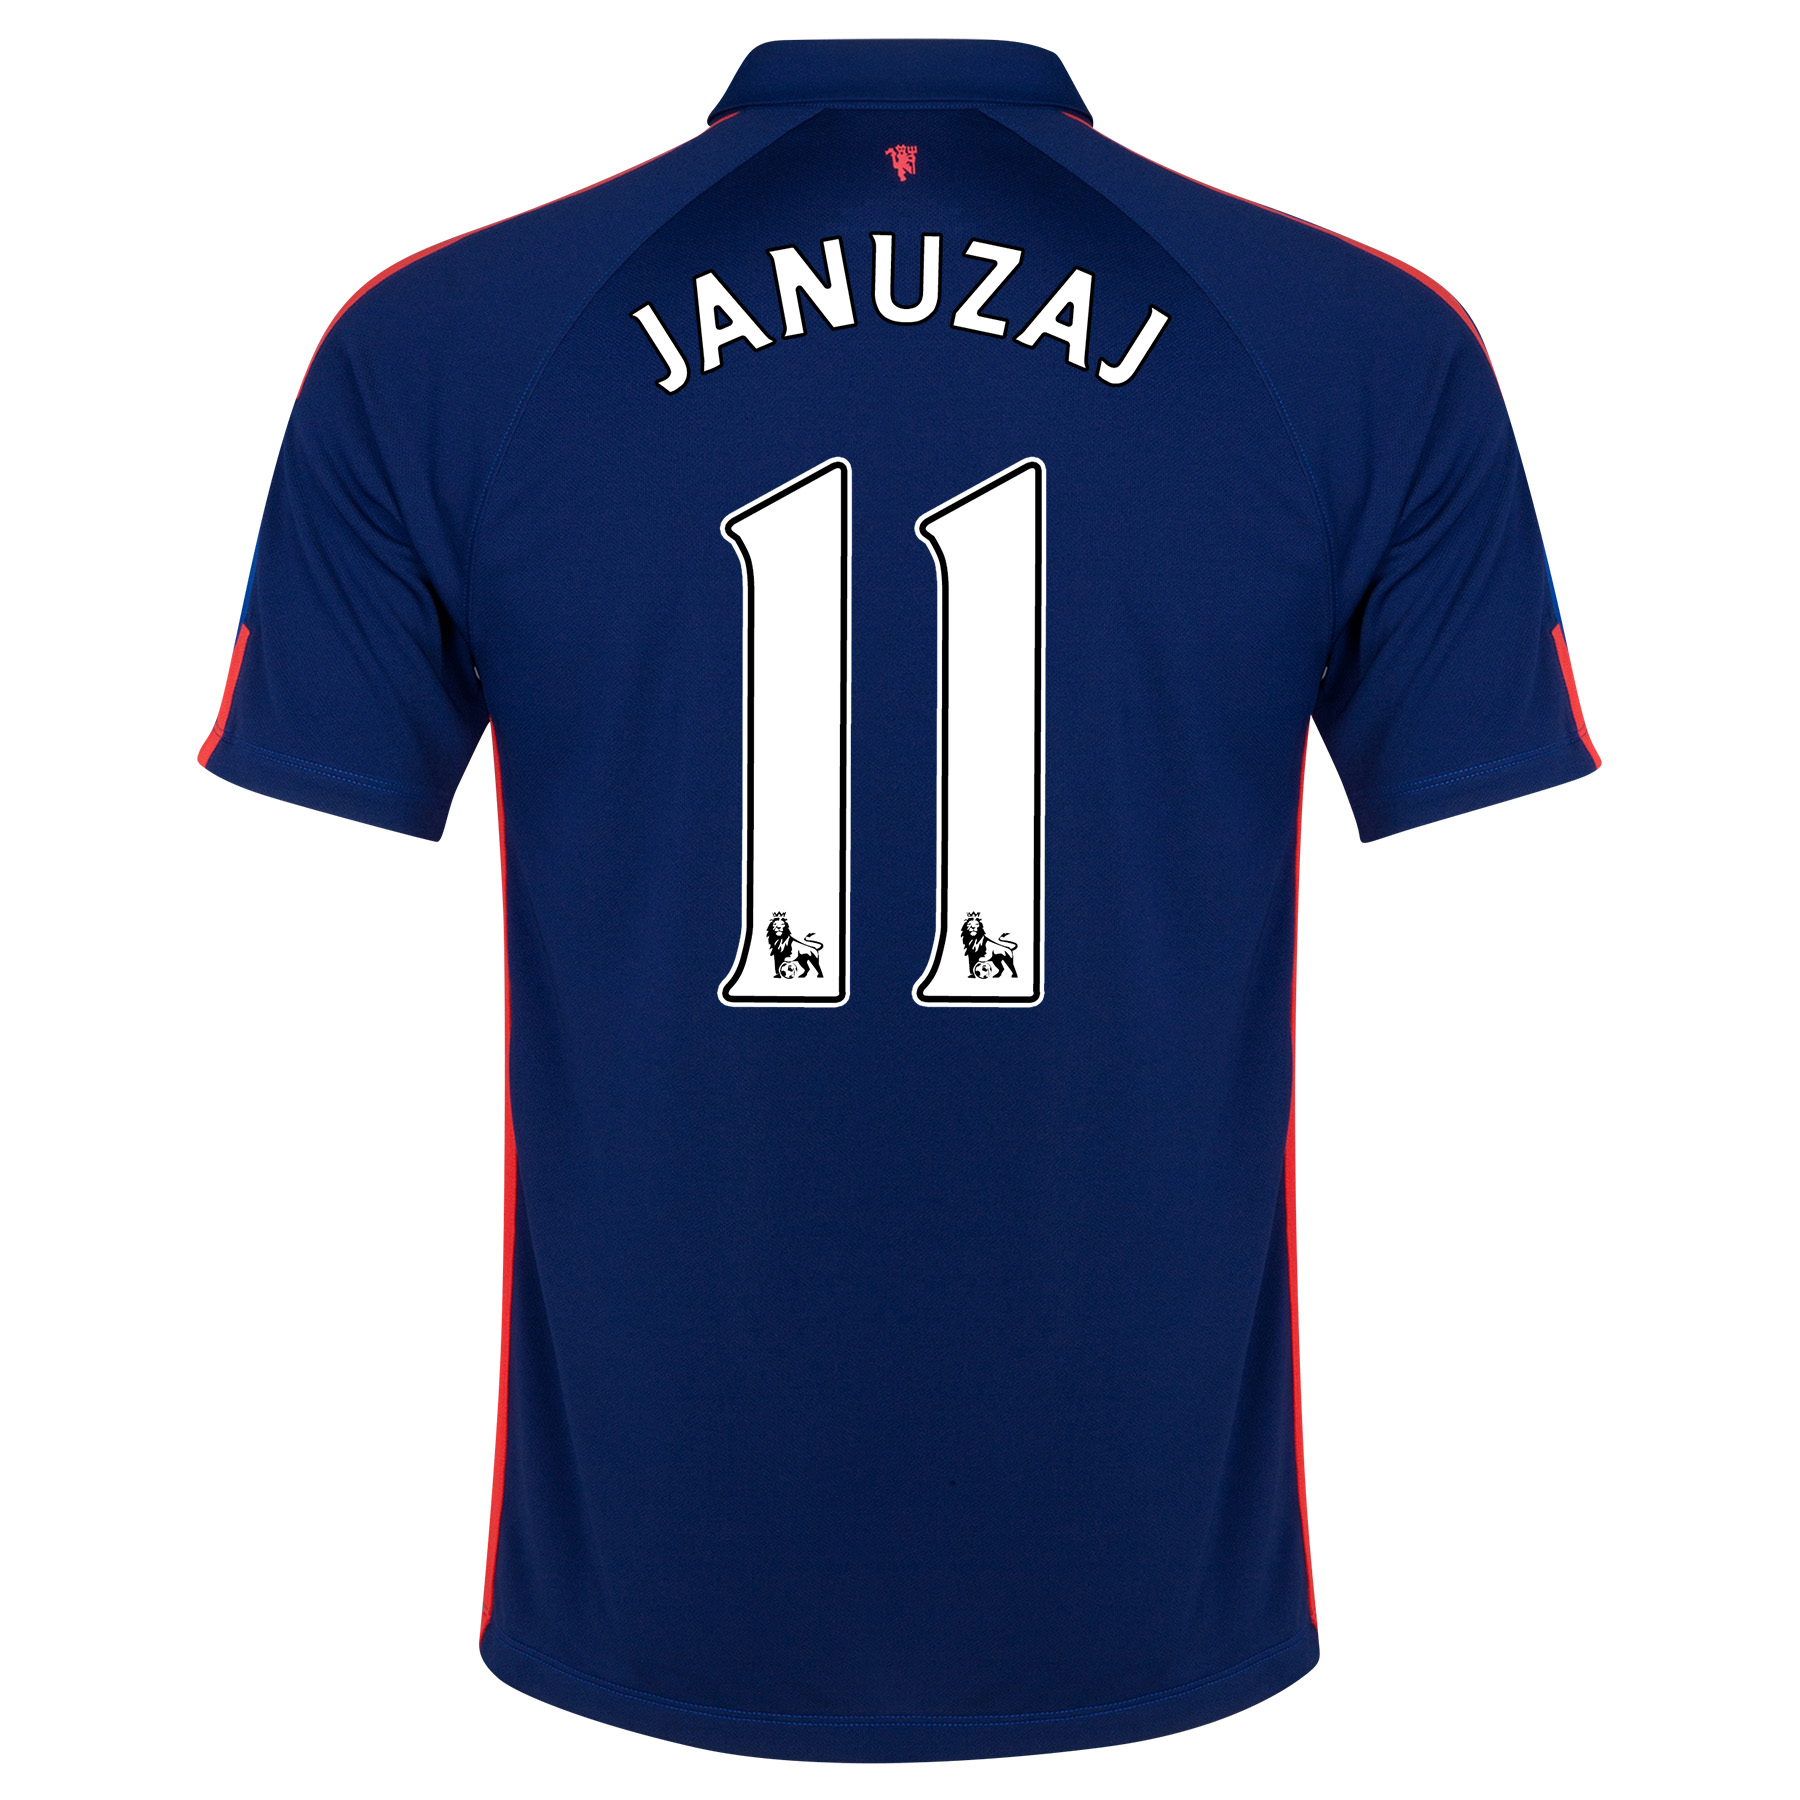 Manchester United Third Kit 2014/15 - Little Boys with Januzaj 11 printing